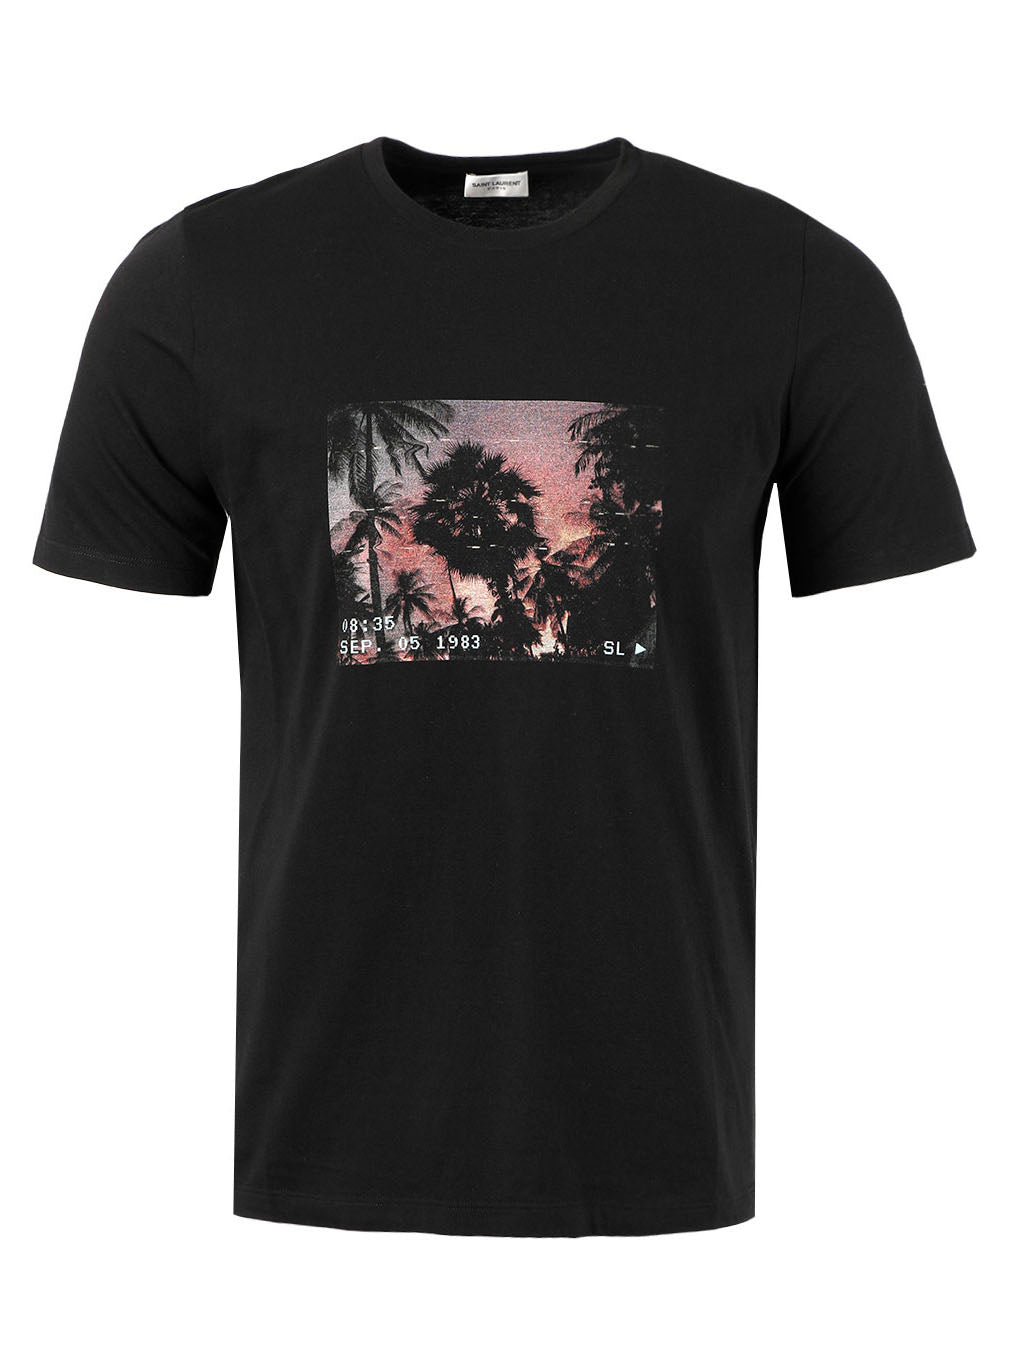 Black Palm Trees Graphic Print VHS T-shirt